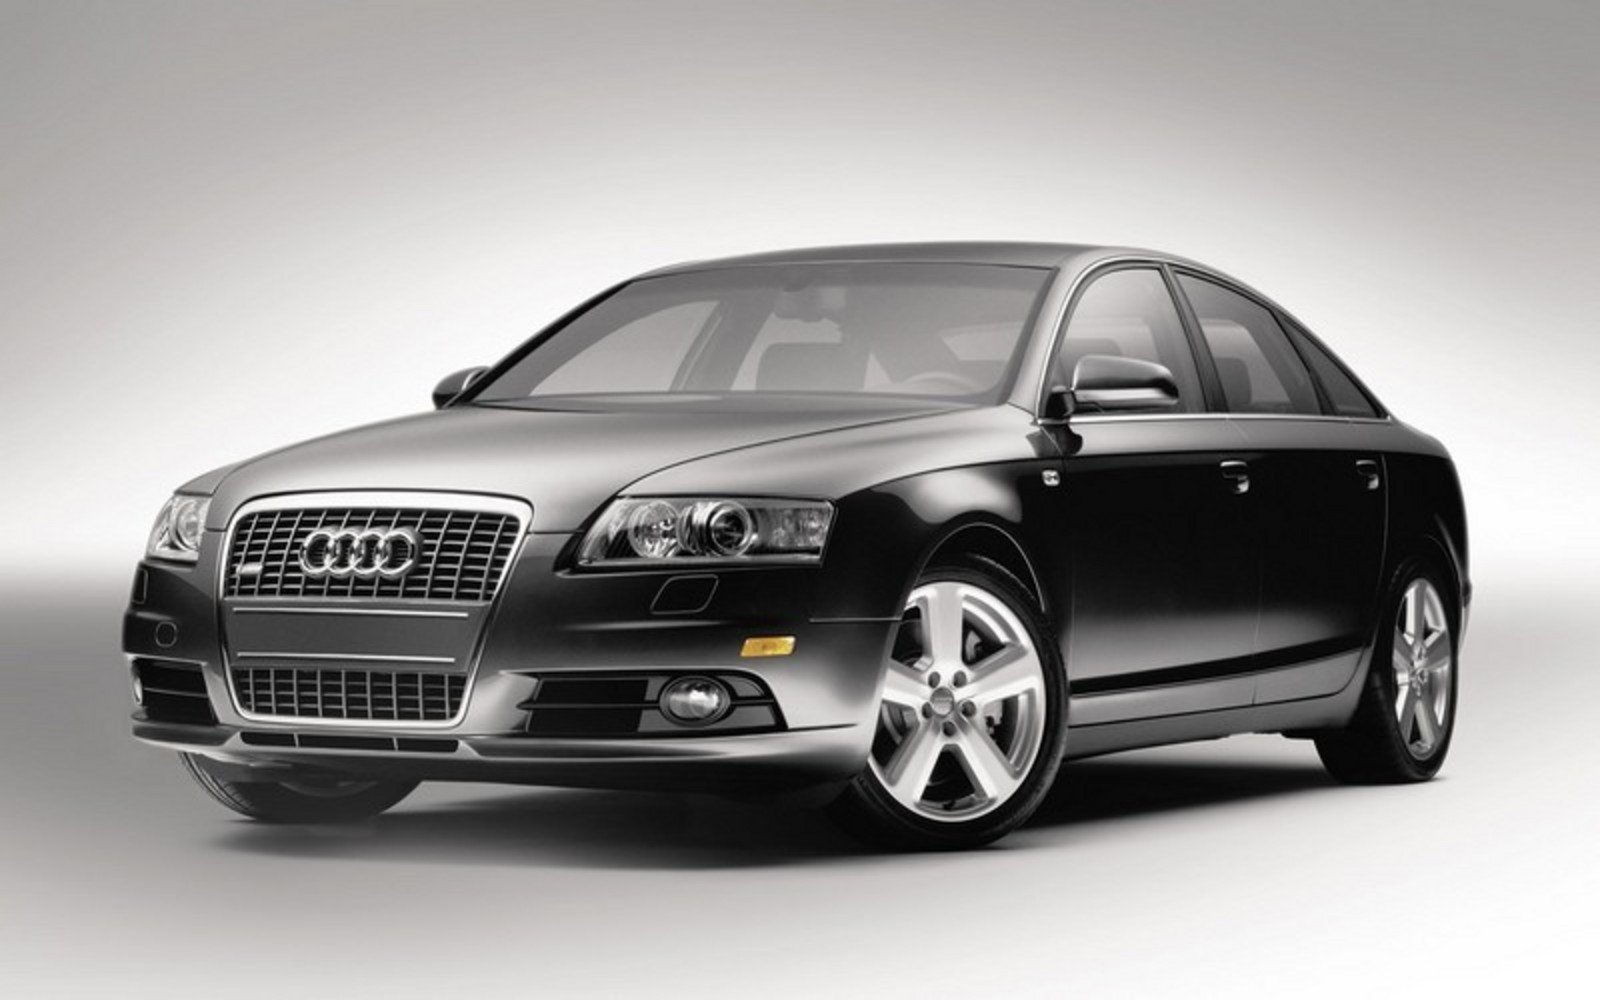 2006 audi a6 sedan review top speed. Black Bedroom Furniture Sets. Home Design Ideas